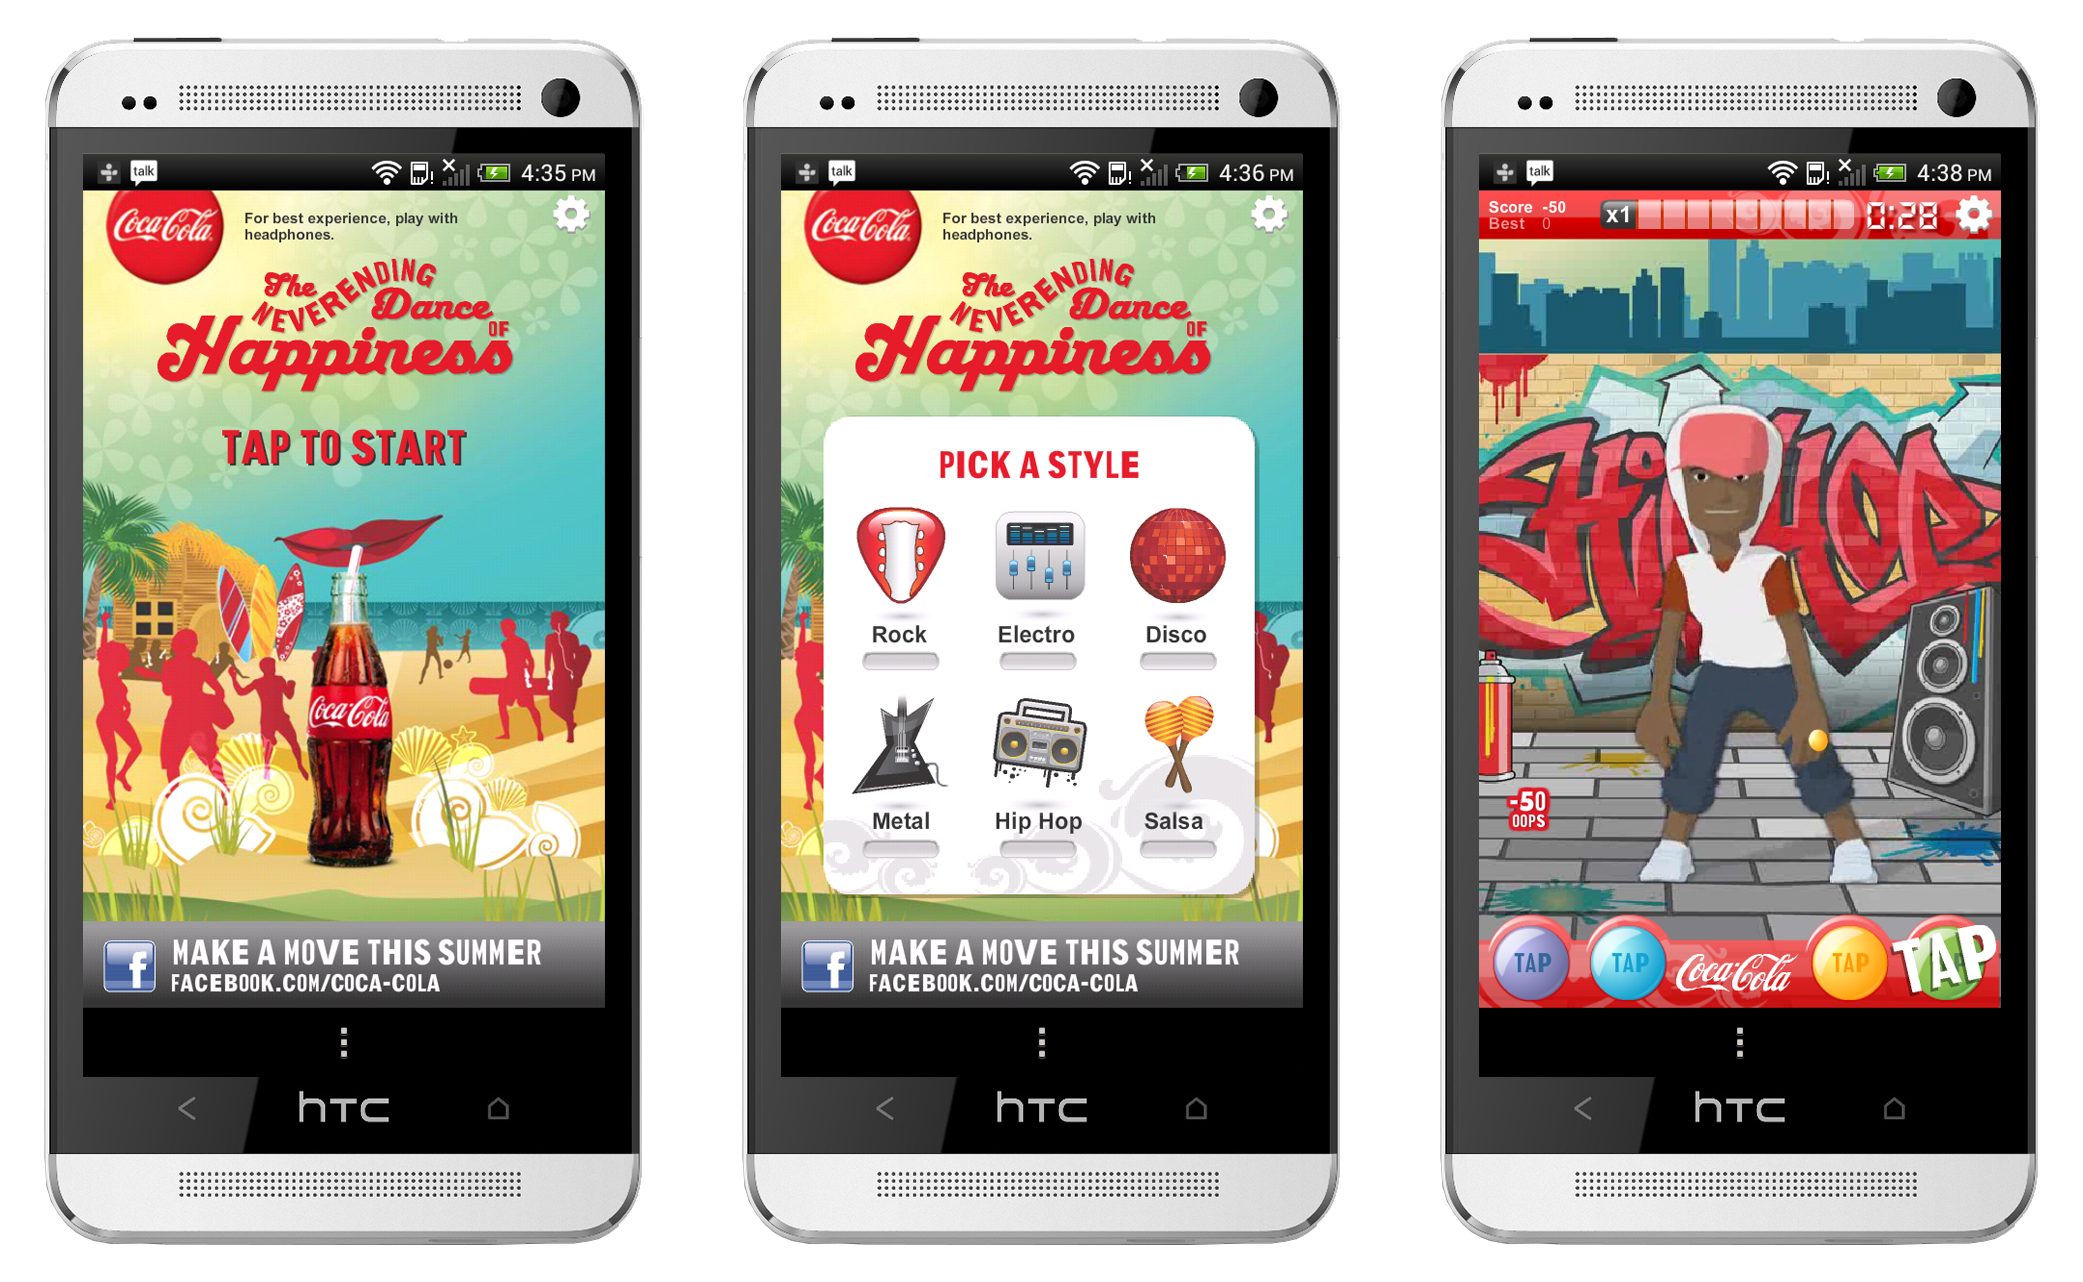 3 phone screen with never ending dance of happiness screen: start screen, pick a style screen, dance screen